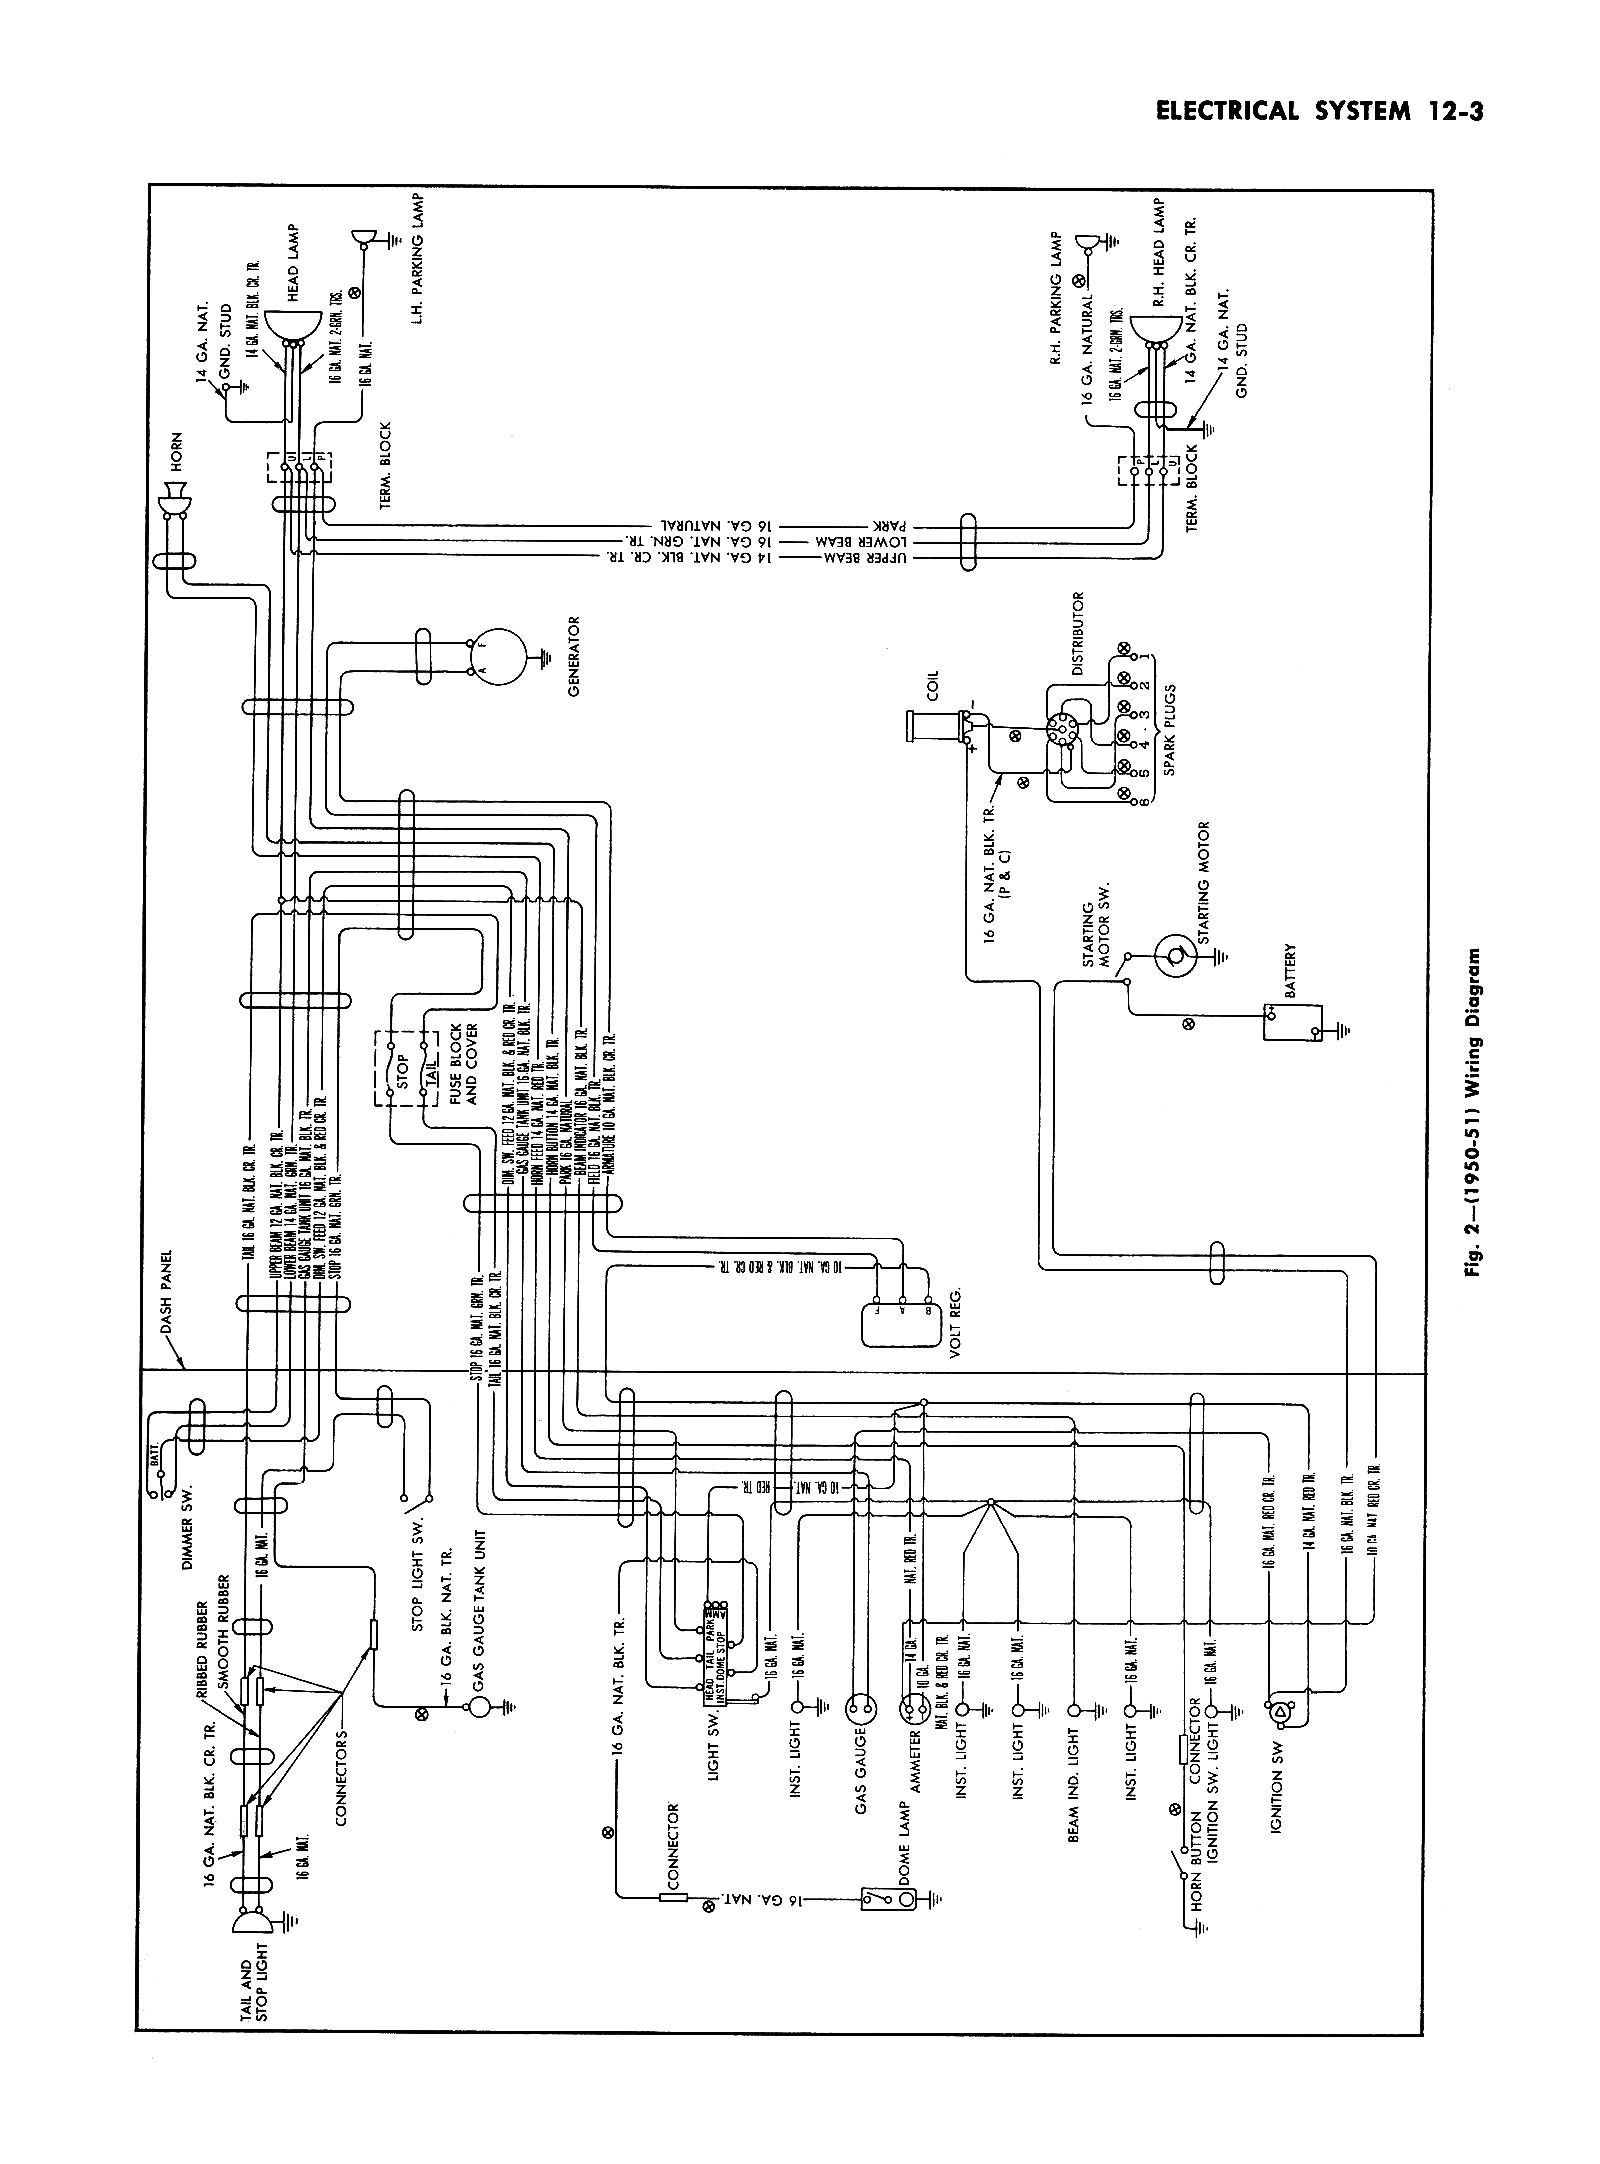 [DIAGRAM] 1966 Chevy Truck Turn Signal Wiring Diagram FULL